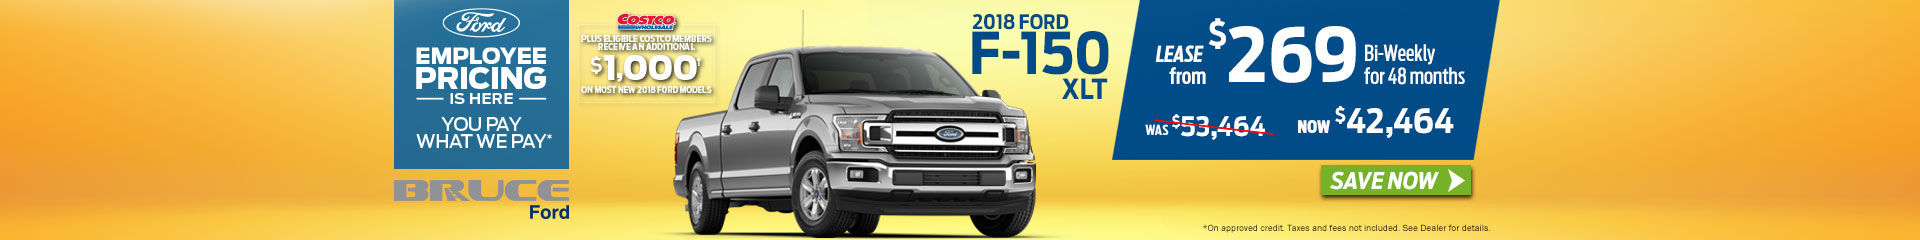 2018-07 F-150 XLT Lease